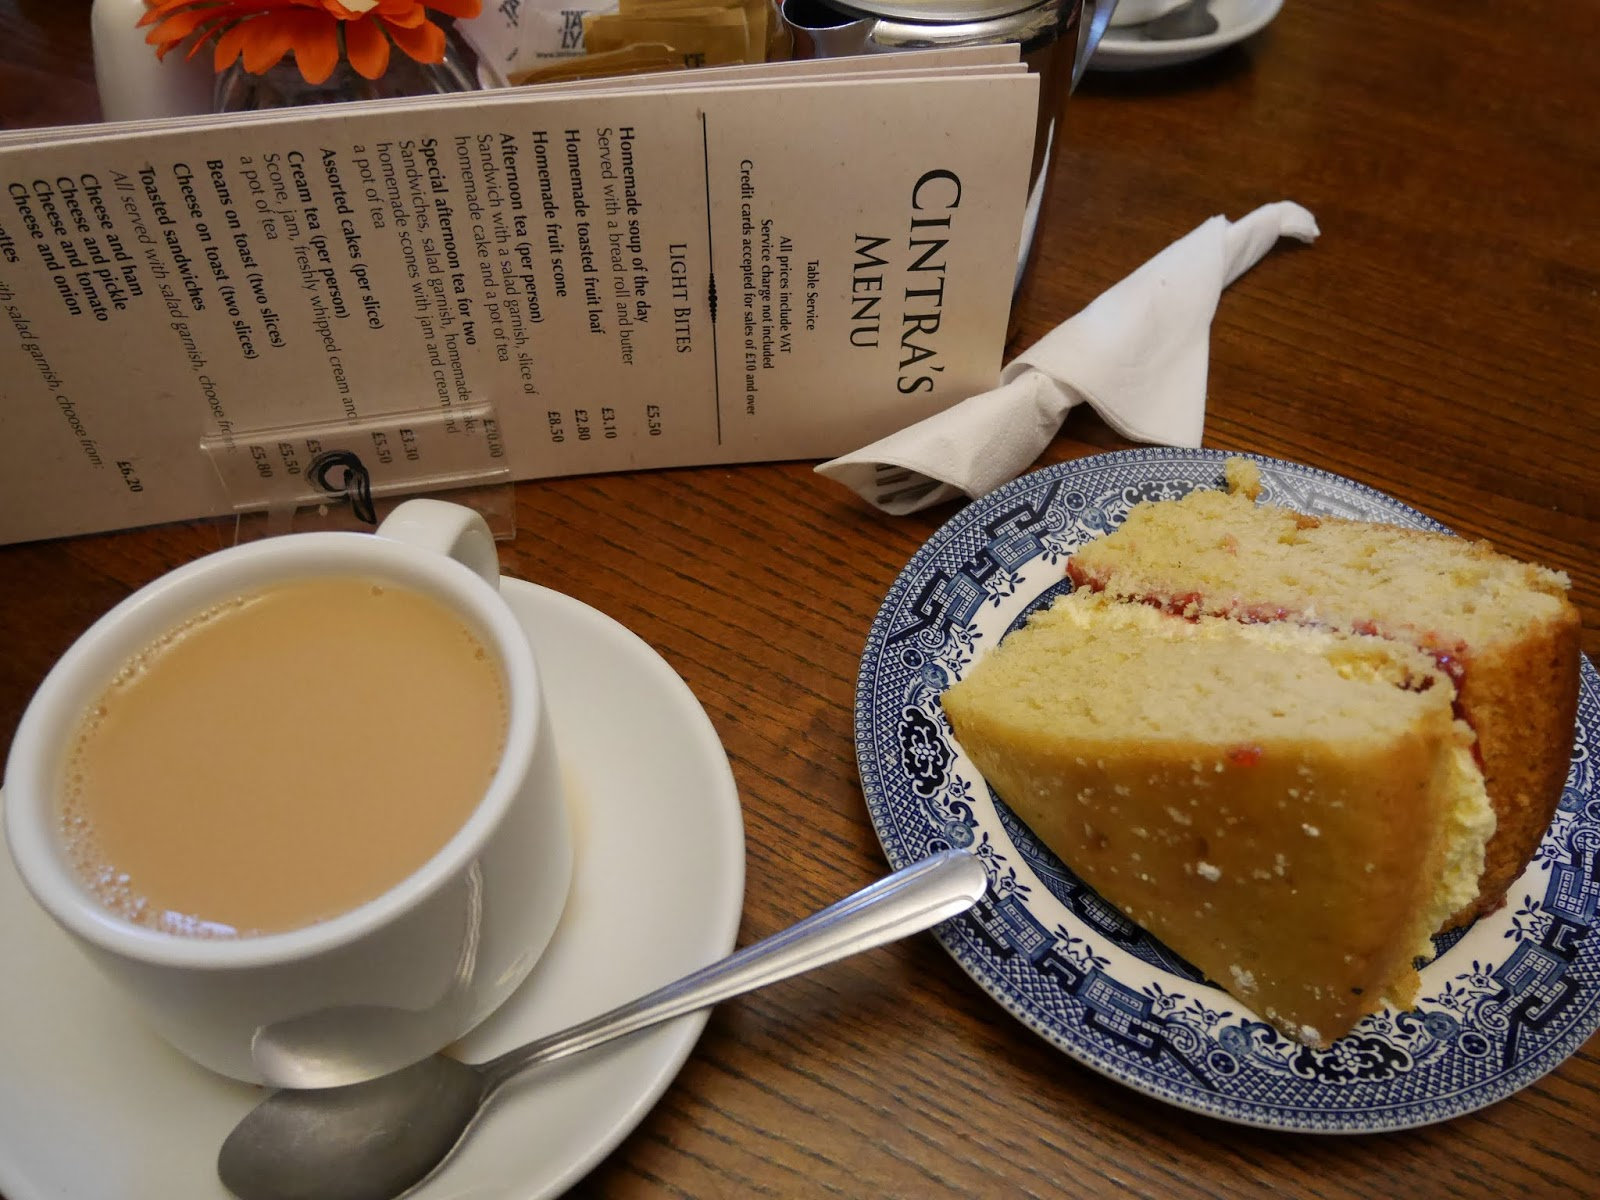 Tea and cake at Cintra's Tearoom in Hathersage, Peak District National Park